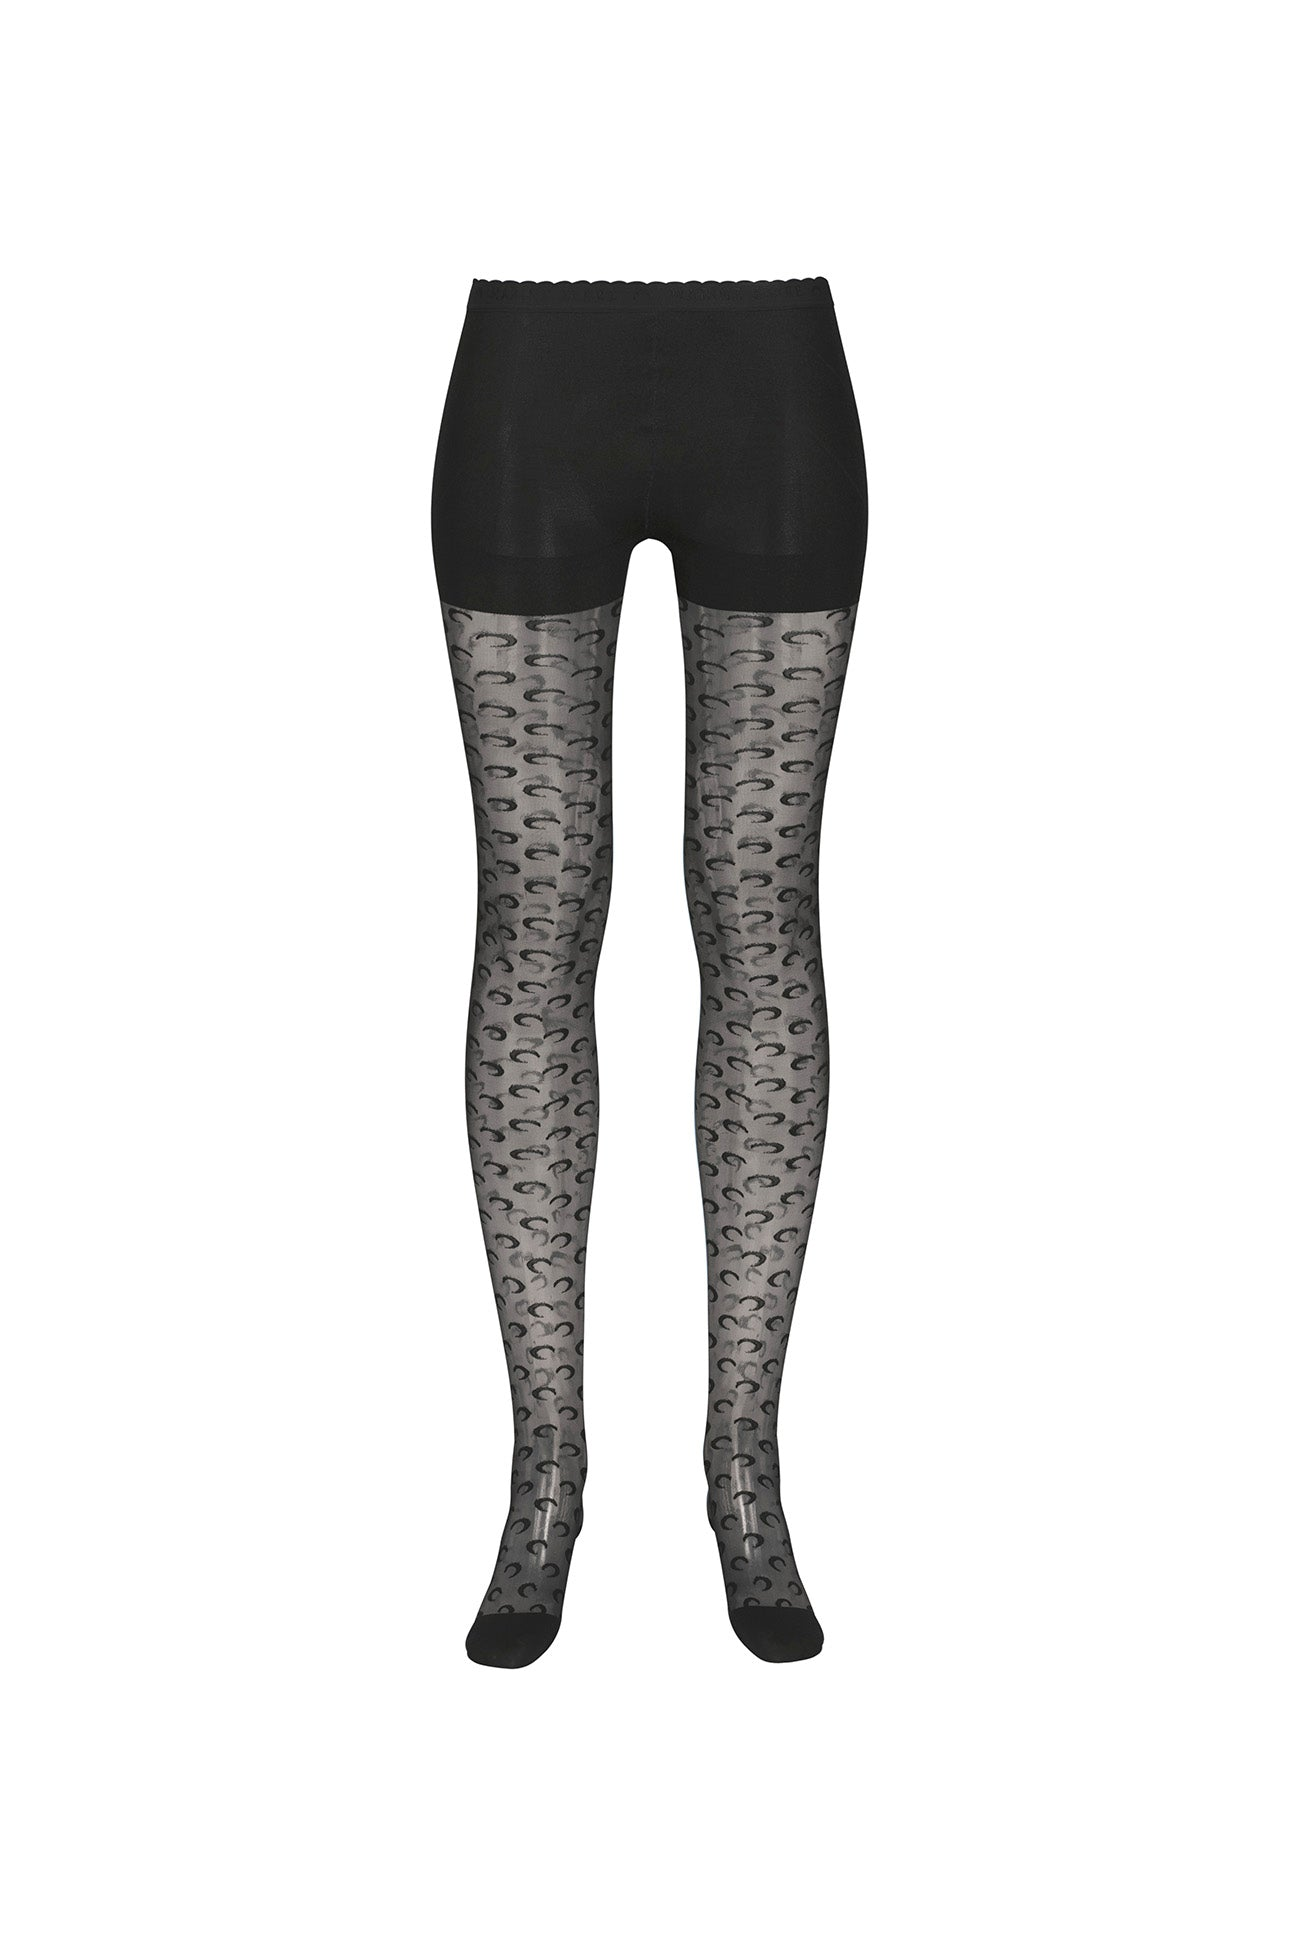 Sheer Moon Jacquard Tights Black